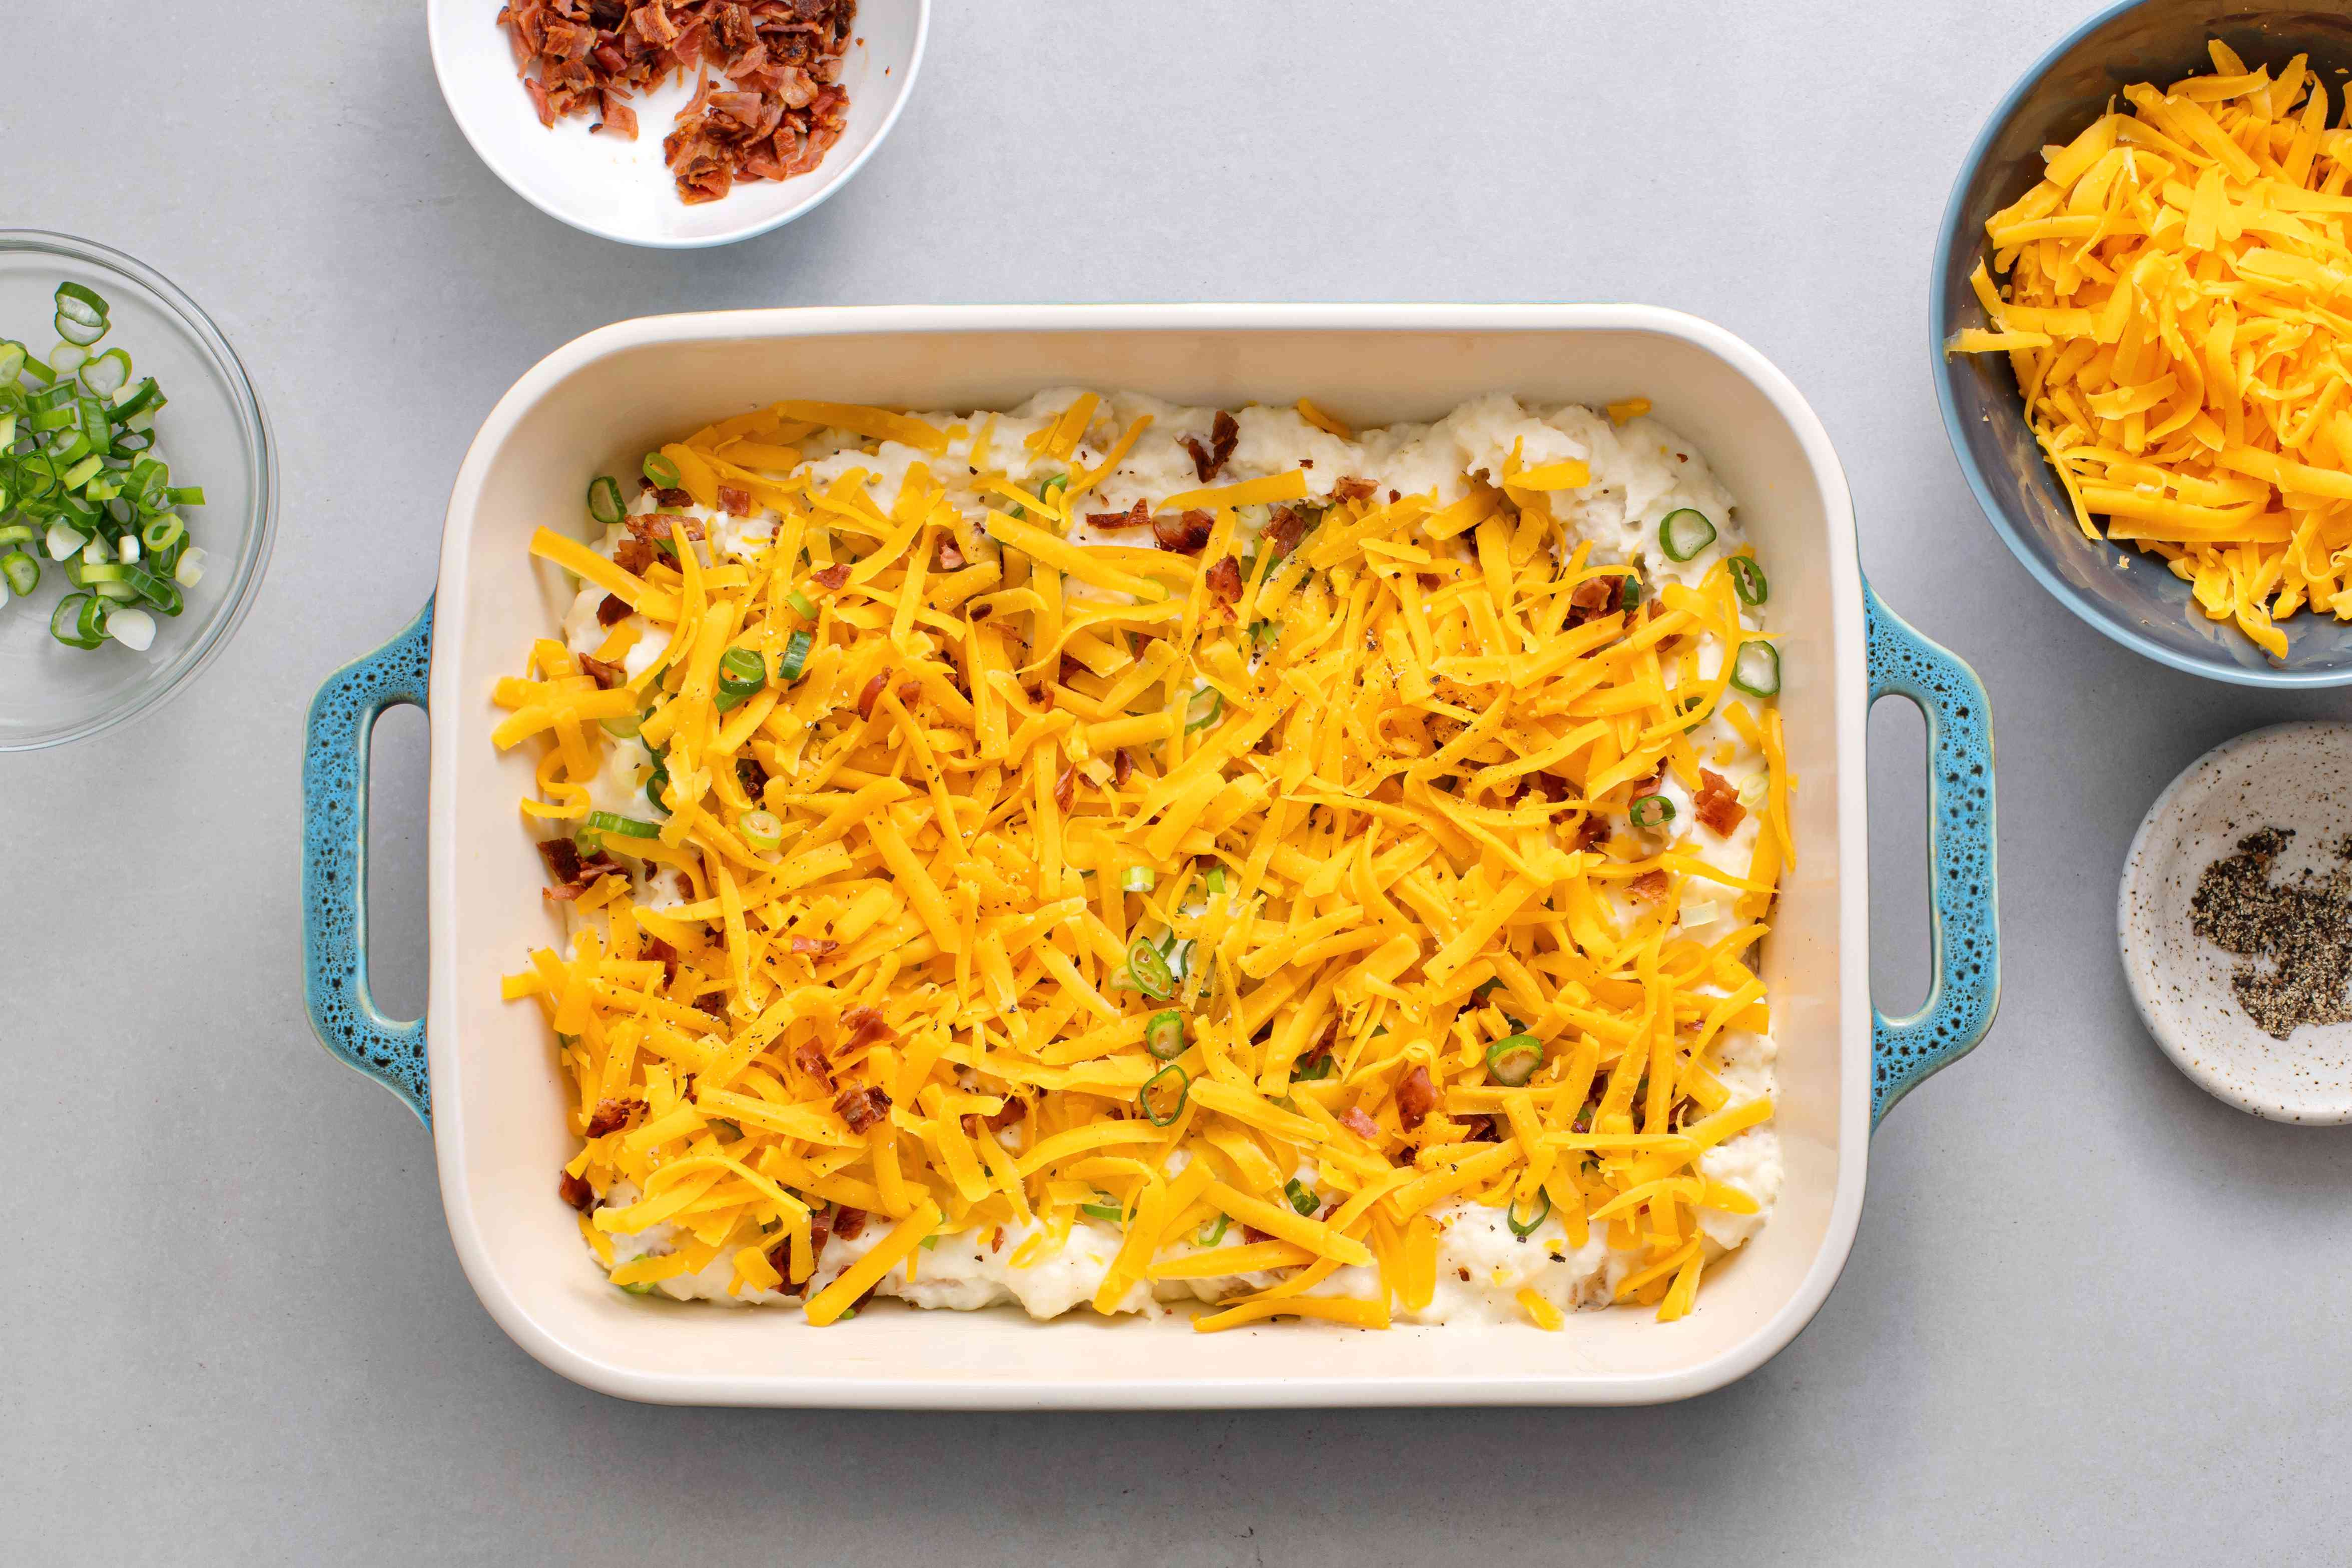 bacon, scallions, and cheddar cheese in a baking dish